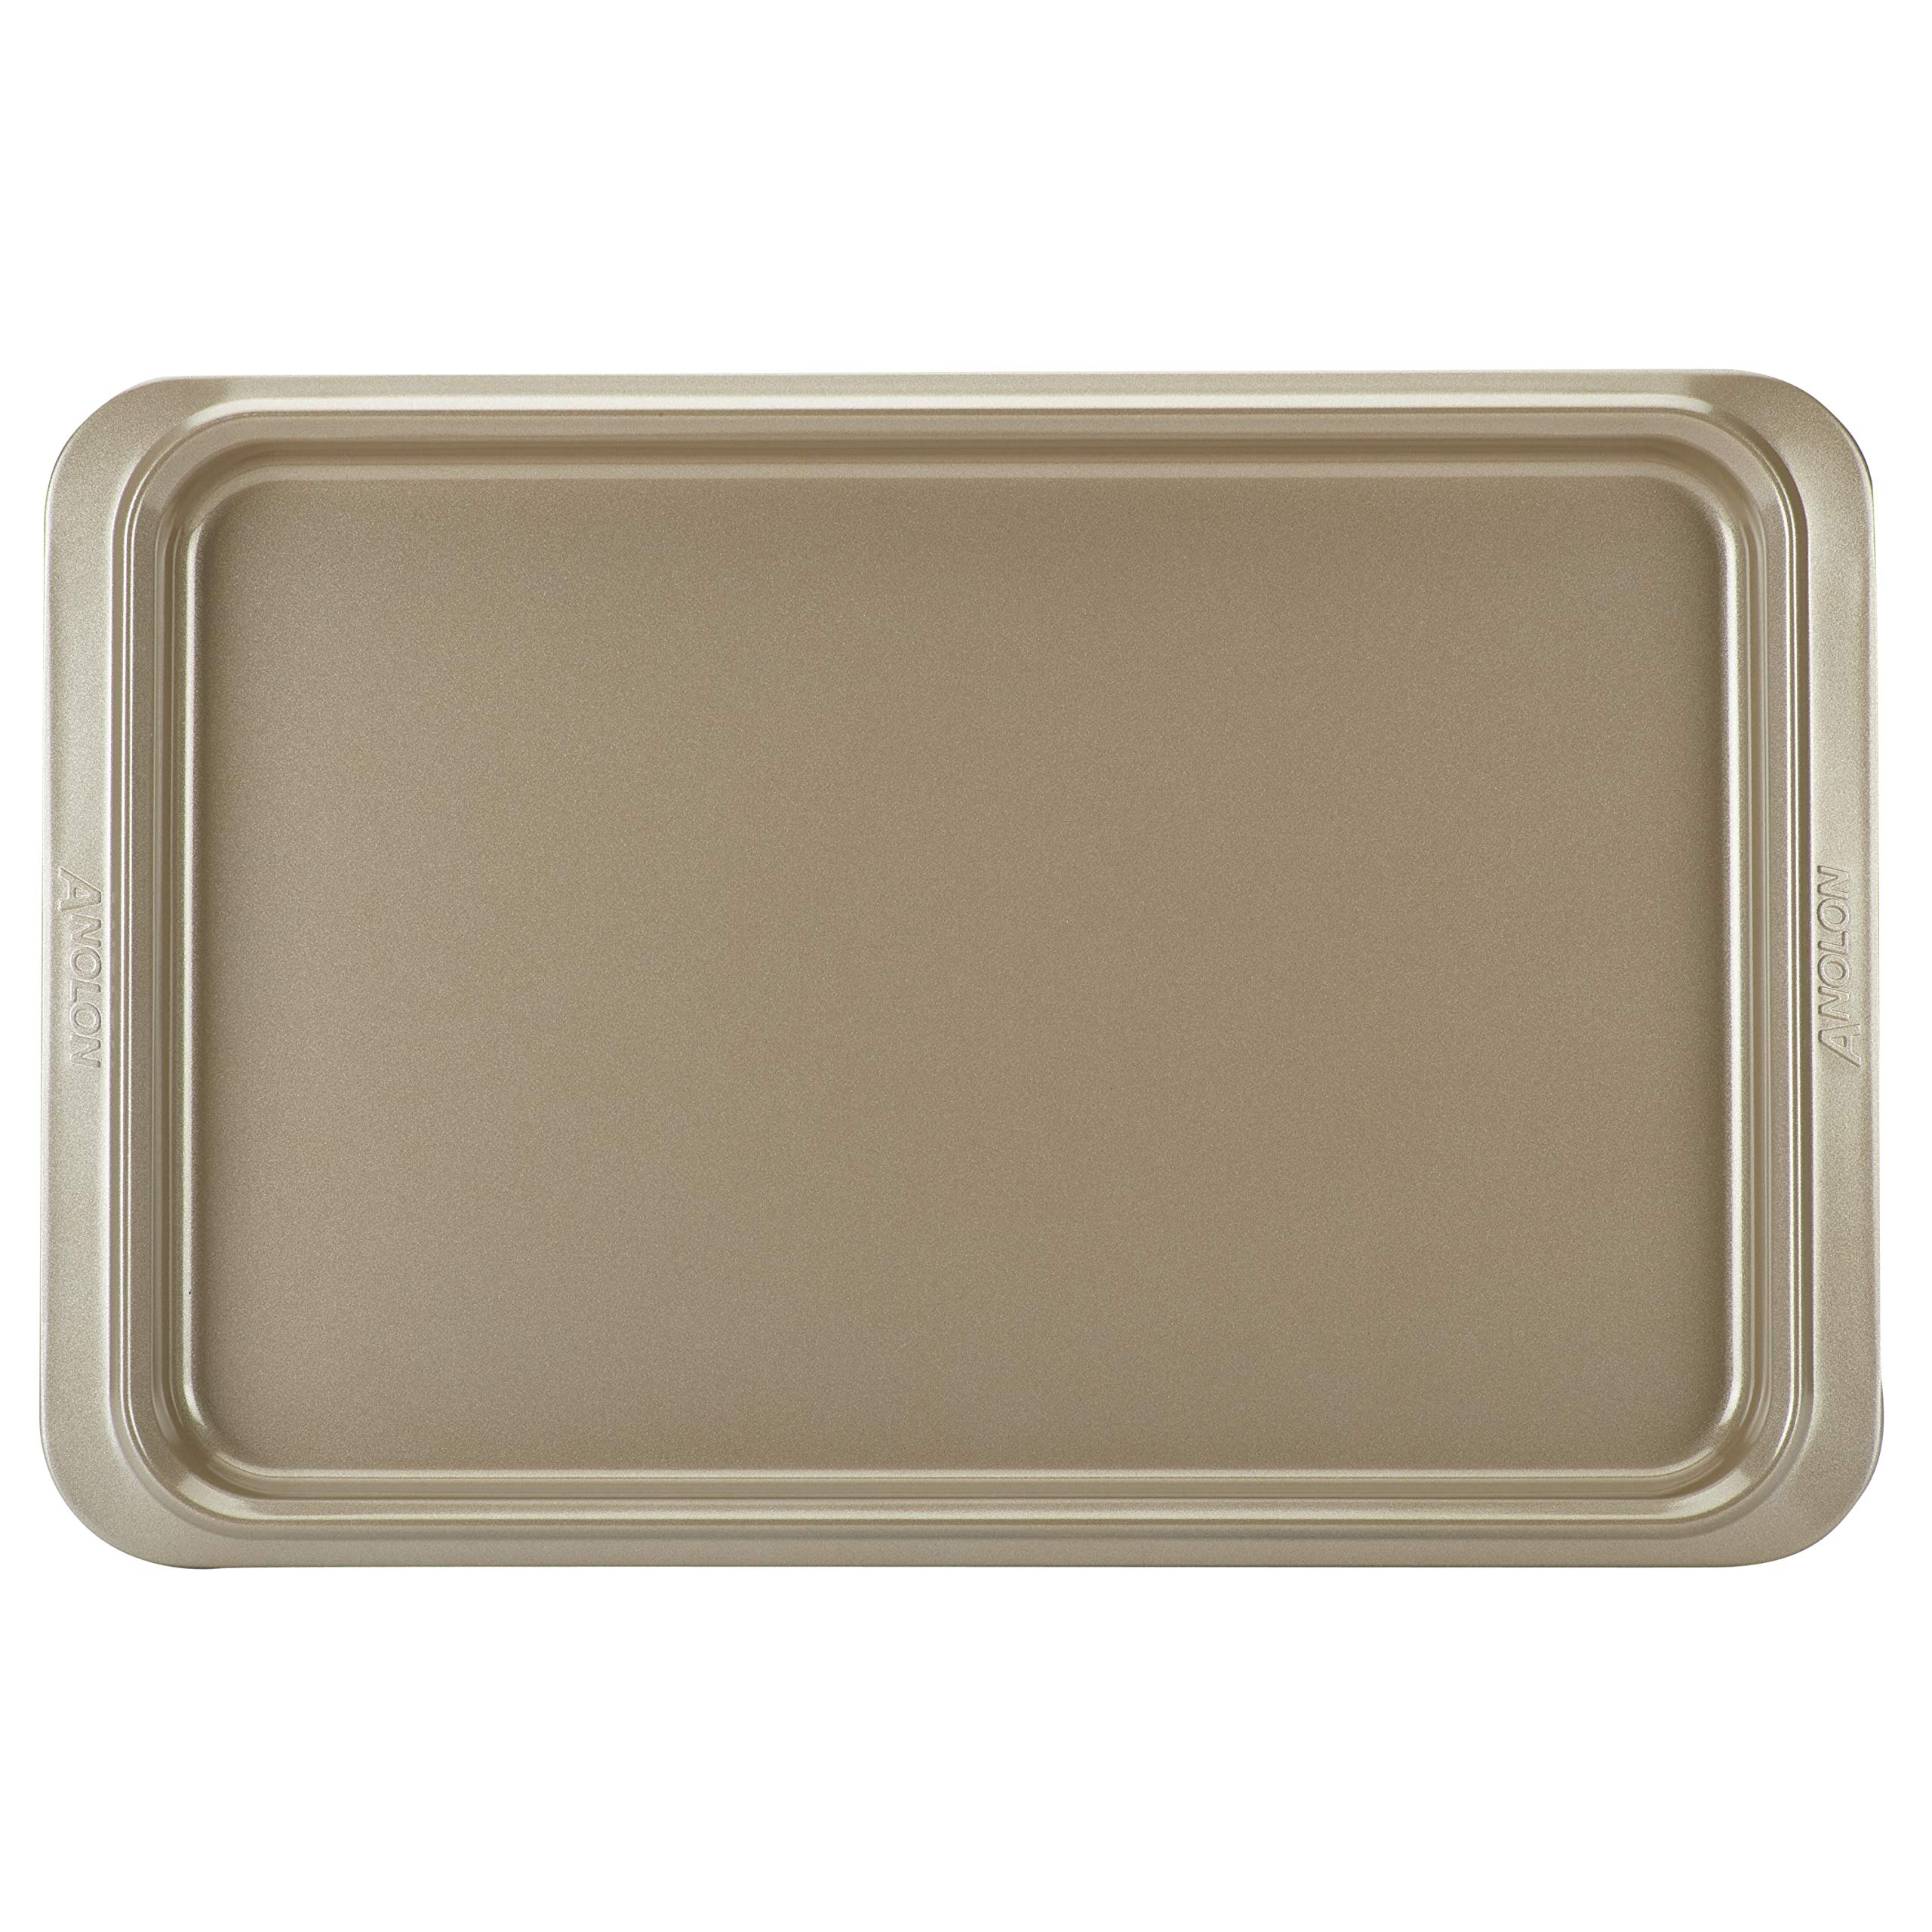 Anolon Eminence Nonstick Bakeware Cookie Pan, 11-Inch x 17-Inch, Onyx with Umber Interior by Anolon (Image #2)